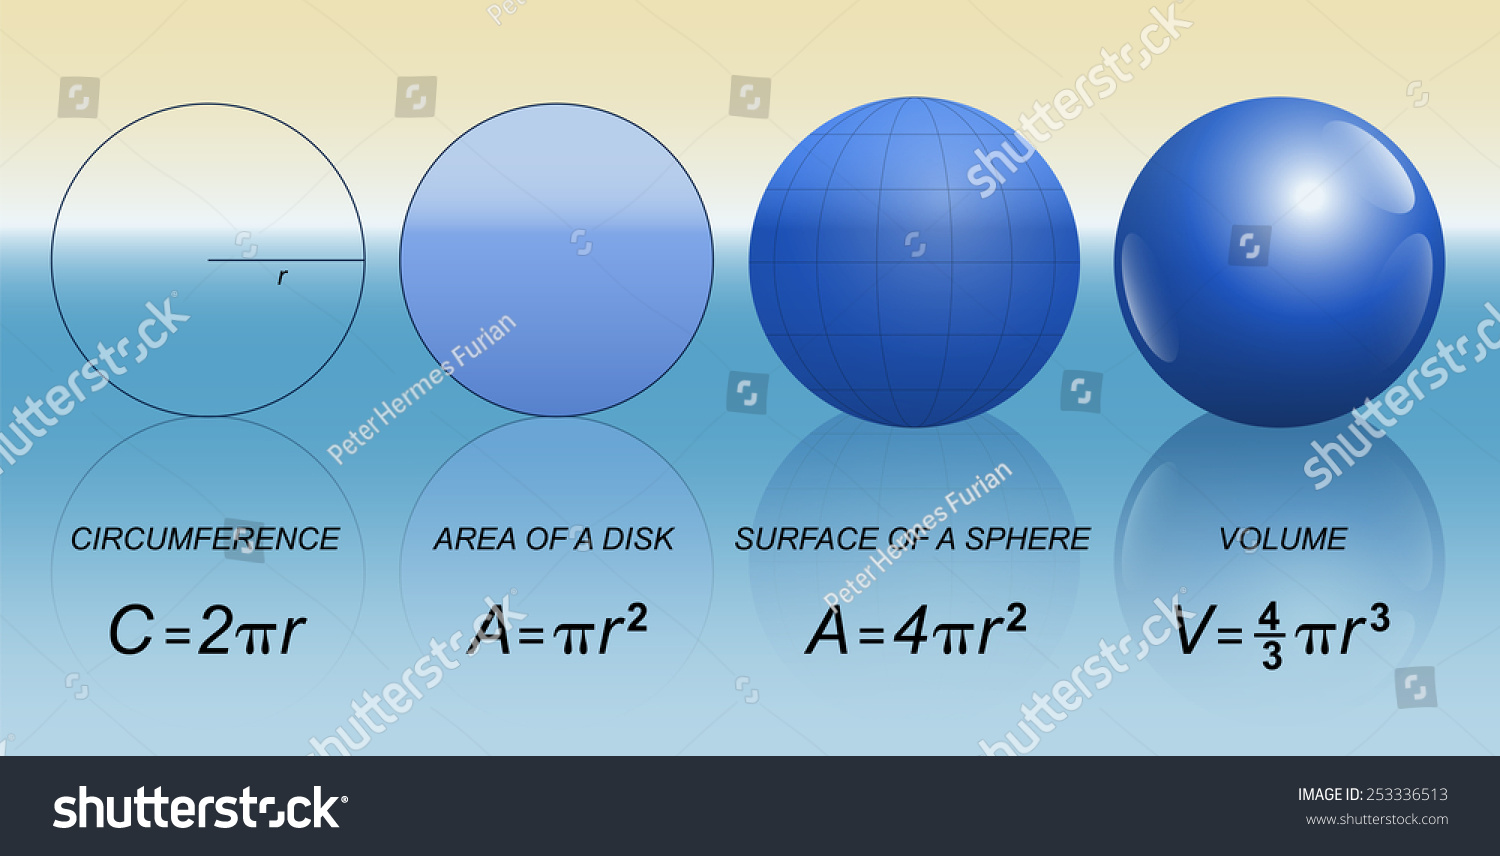 Circle And Spheres With Mathematical Formulas Of Circumference, Area Of A  Disk, Surface Of